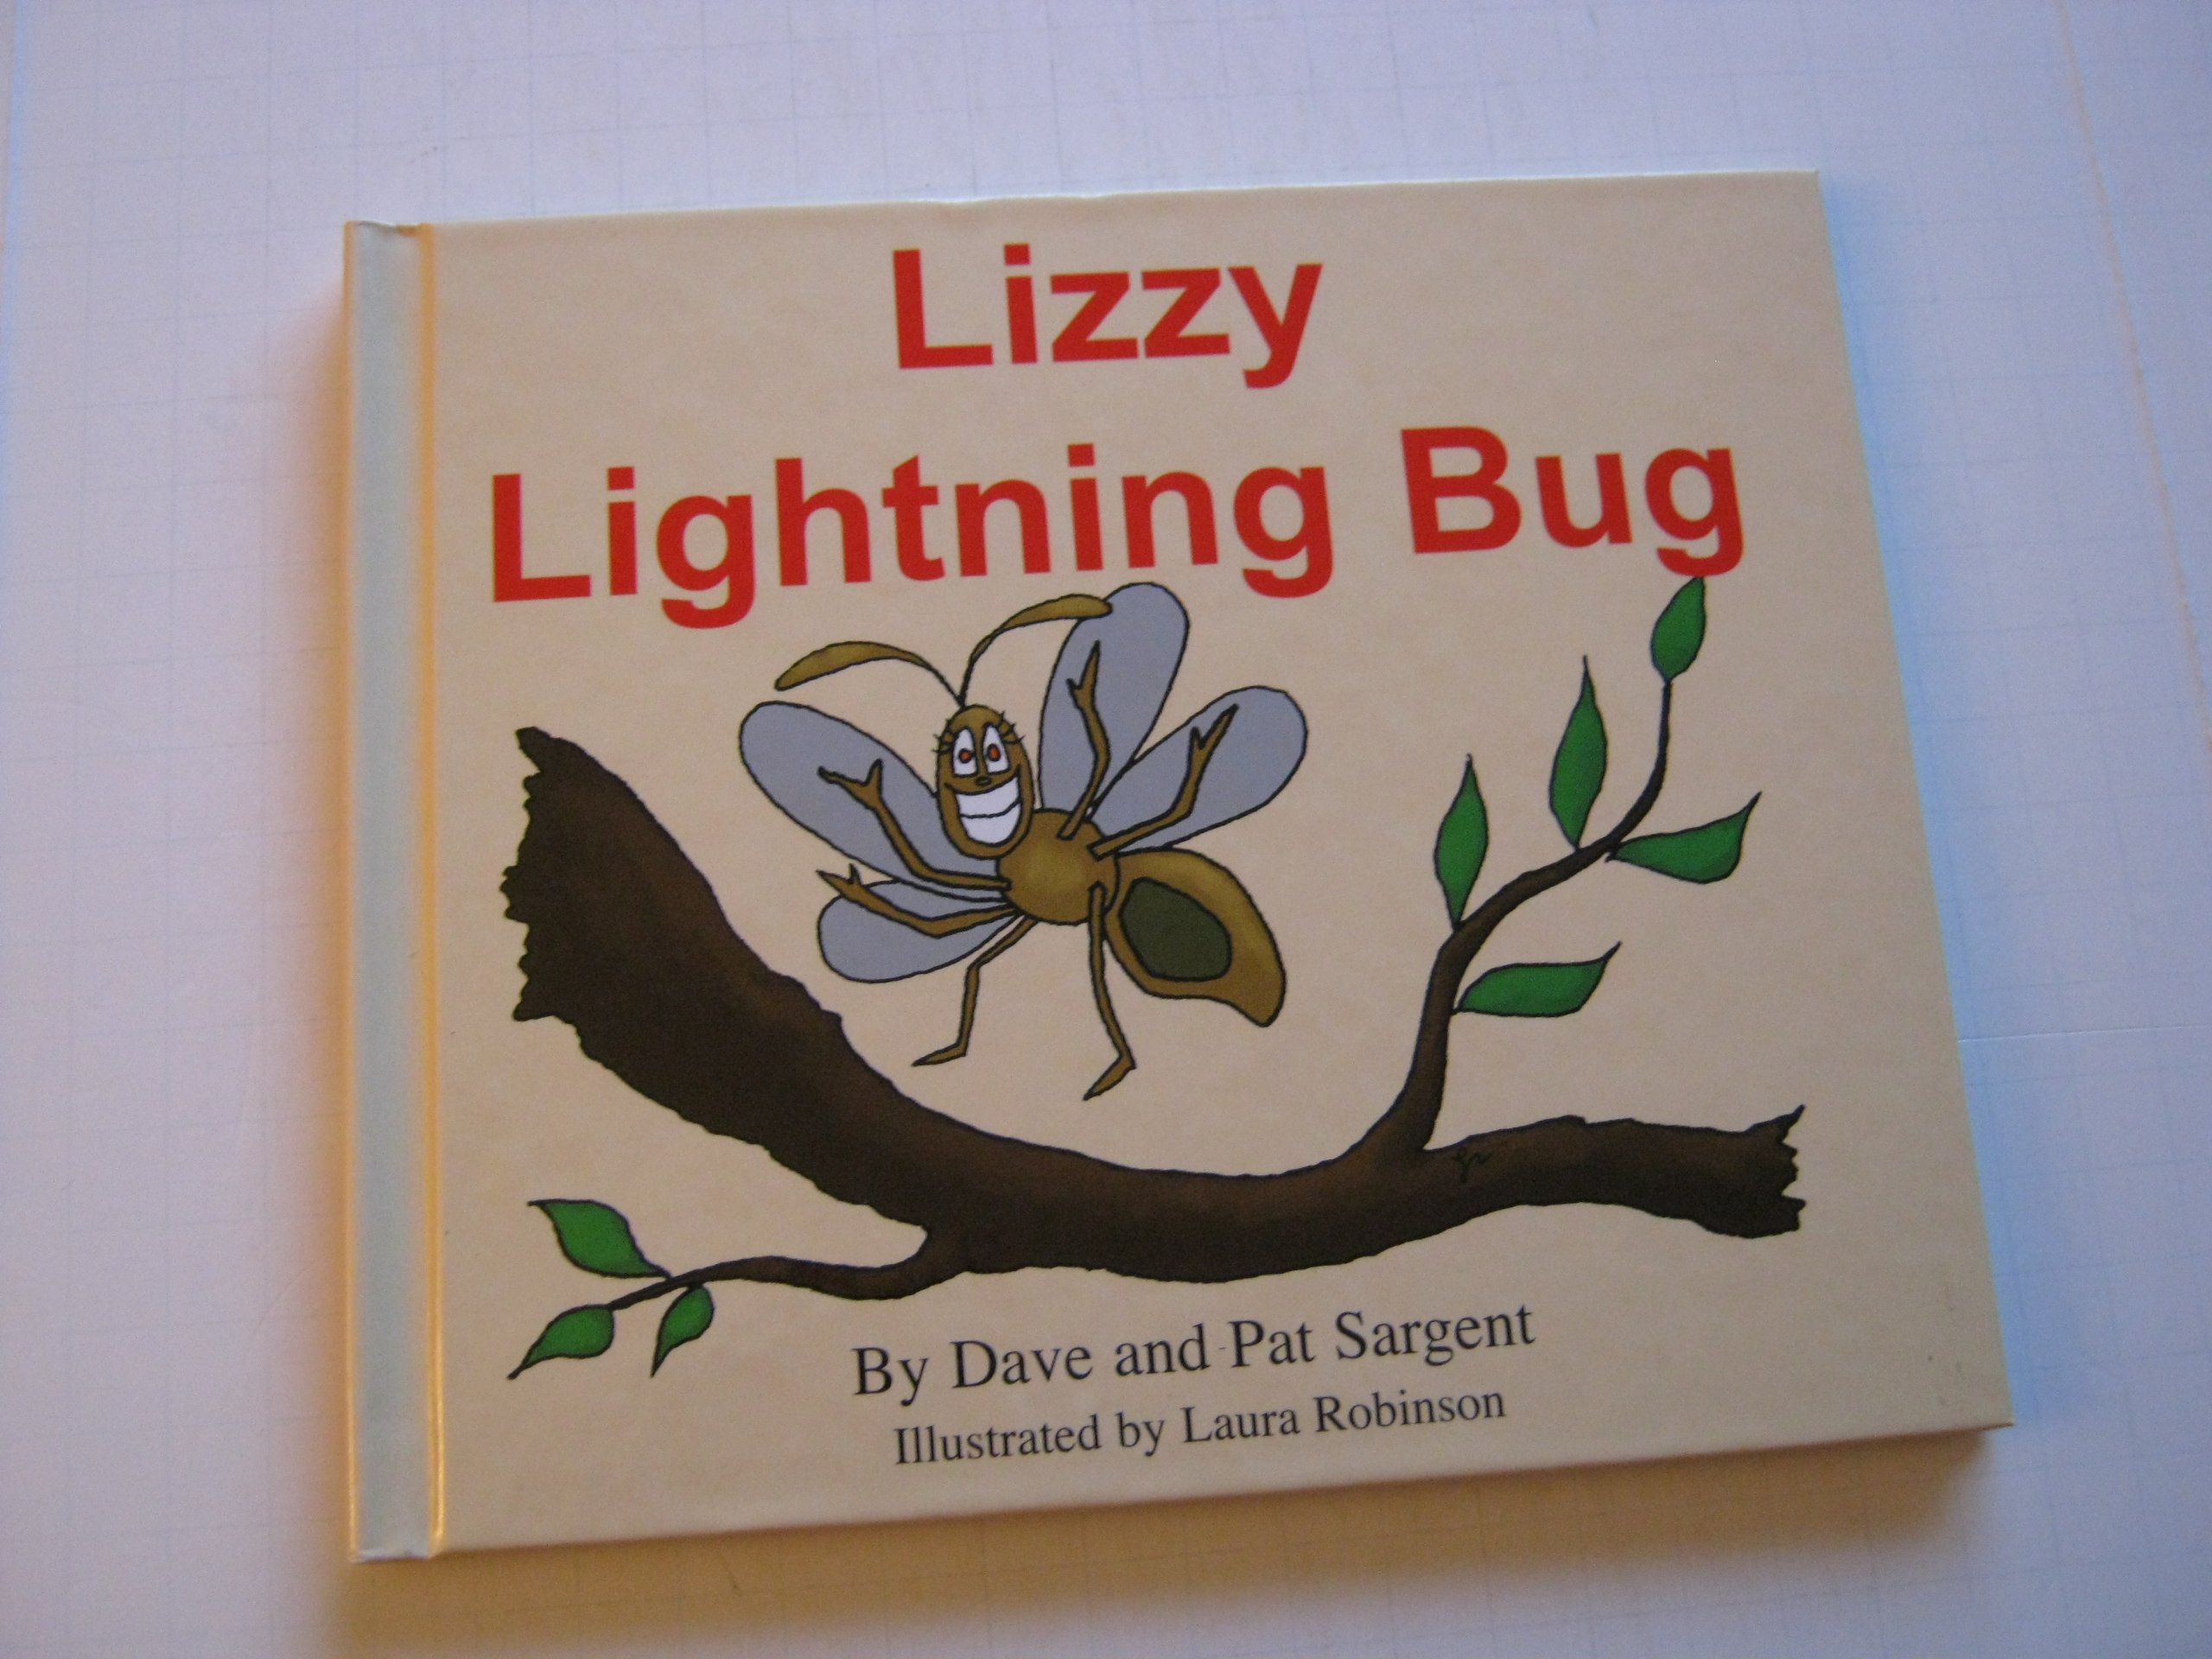 Lizzy Lightning Bug (Learn to Read 1st Grade) PDF